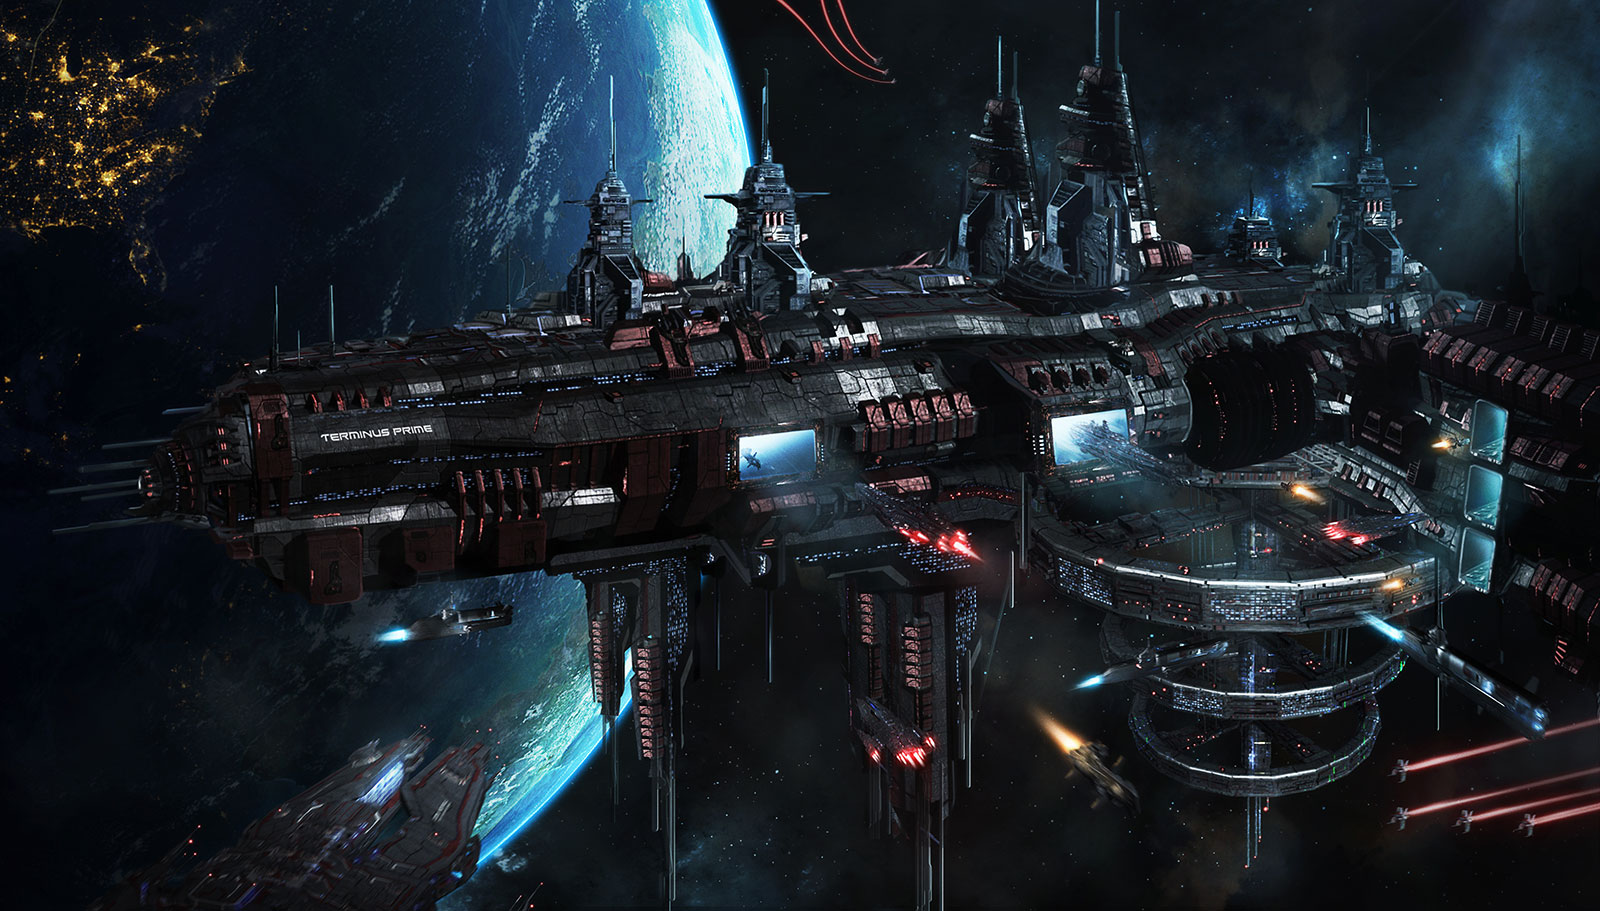 Station-artwork_FINAL_LR.jpg